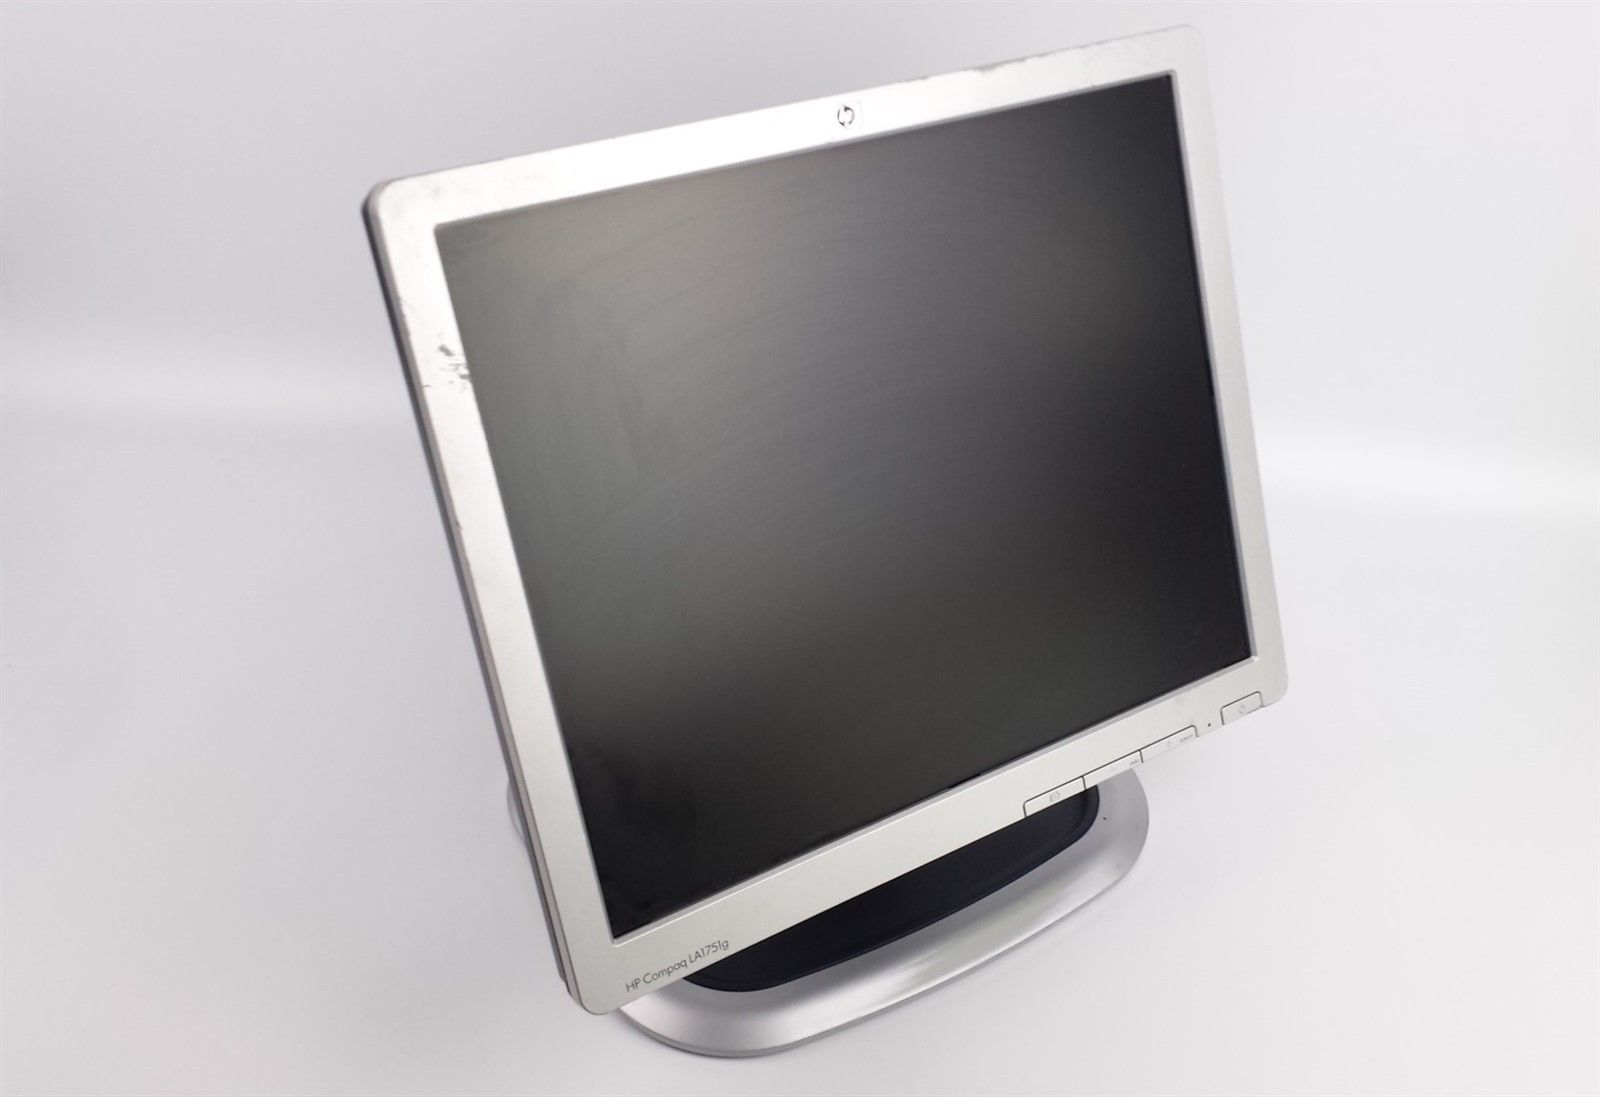 "HP Compaq LA1751g Flat Screen LCD Computer Monitor 17"" with Bunny Stand"